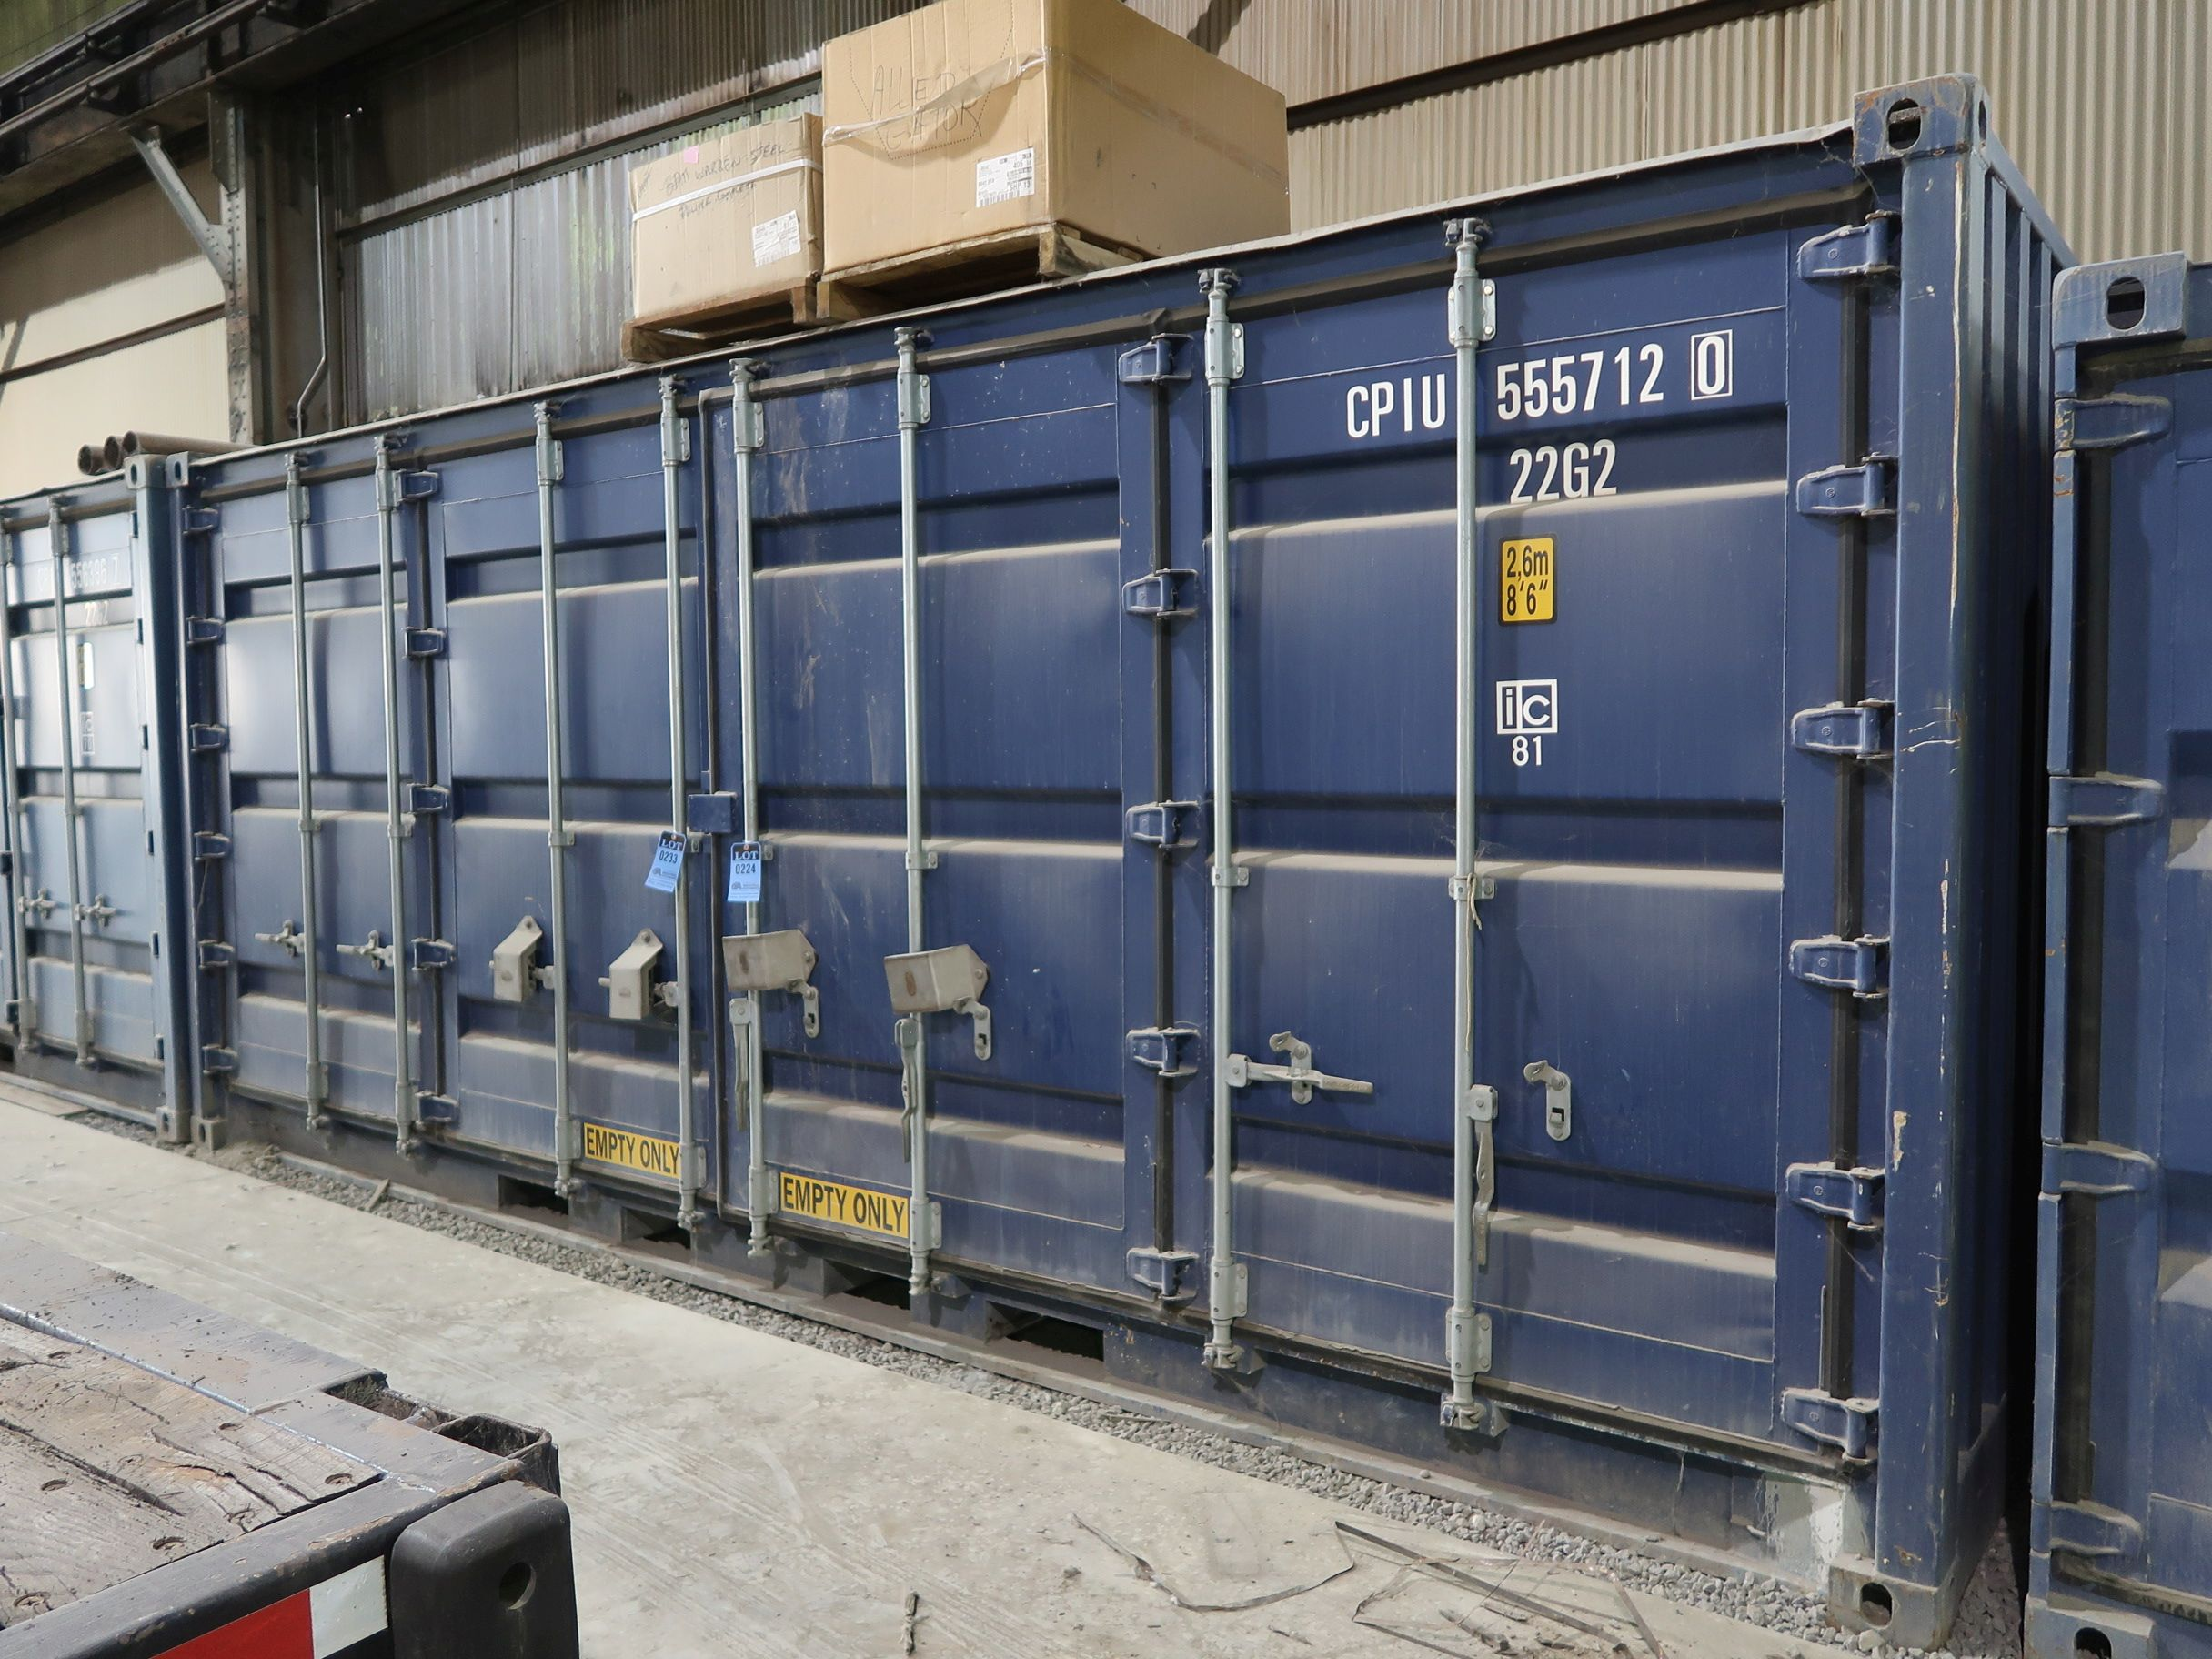 "Lot 233 - 238"" X 95"" X 100"" X 1094 CU. FT. CONEX STORAGE CONTAINER WITH STANDARD DOOR AND SIDE ENTRANCE DOORS"